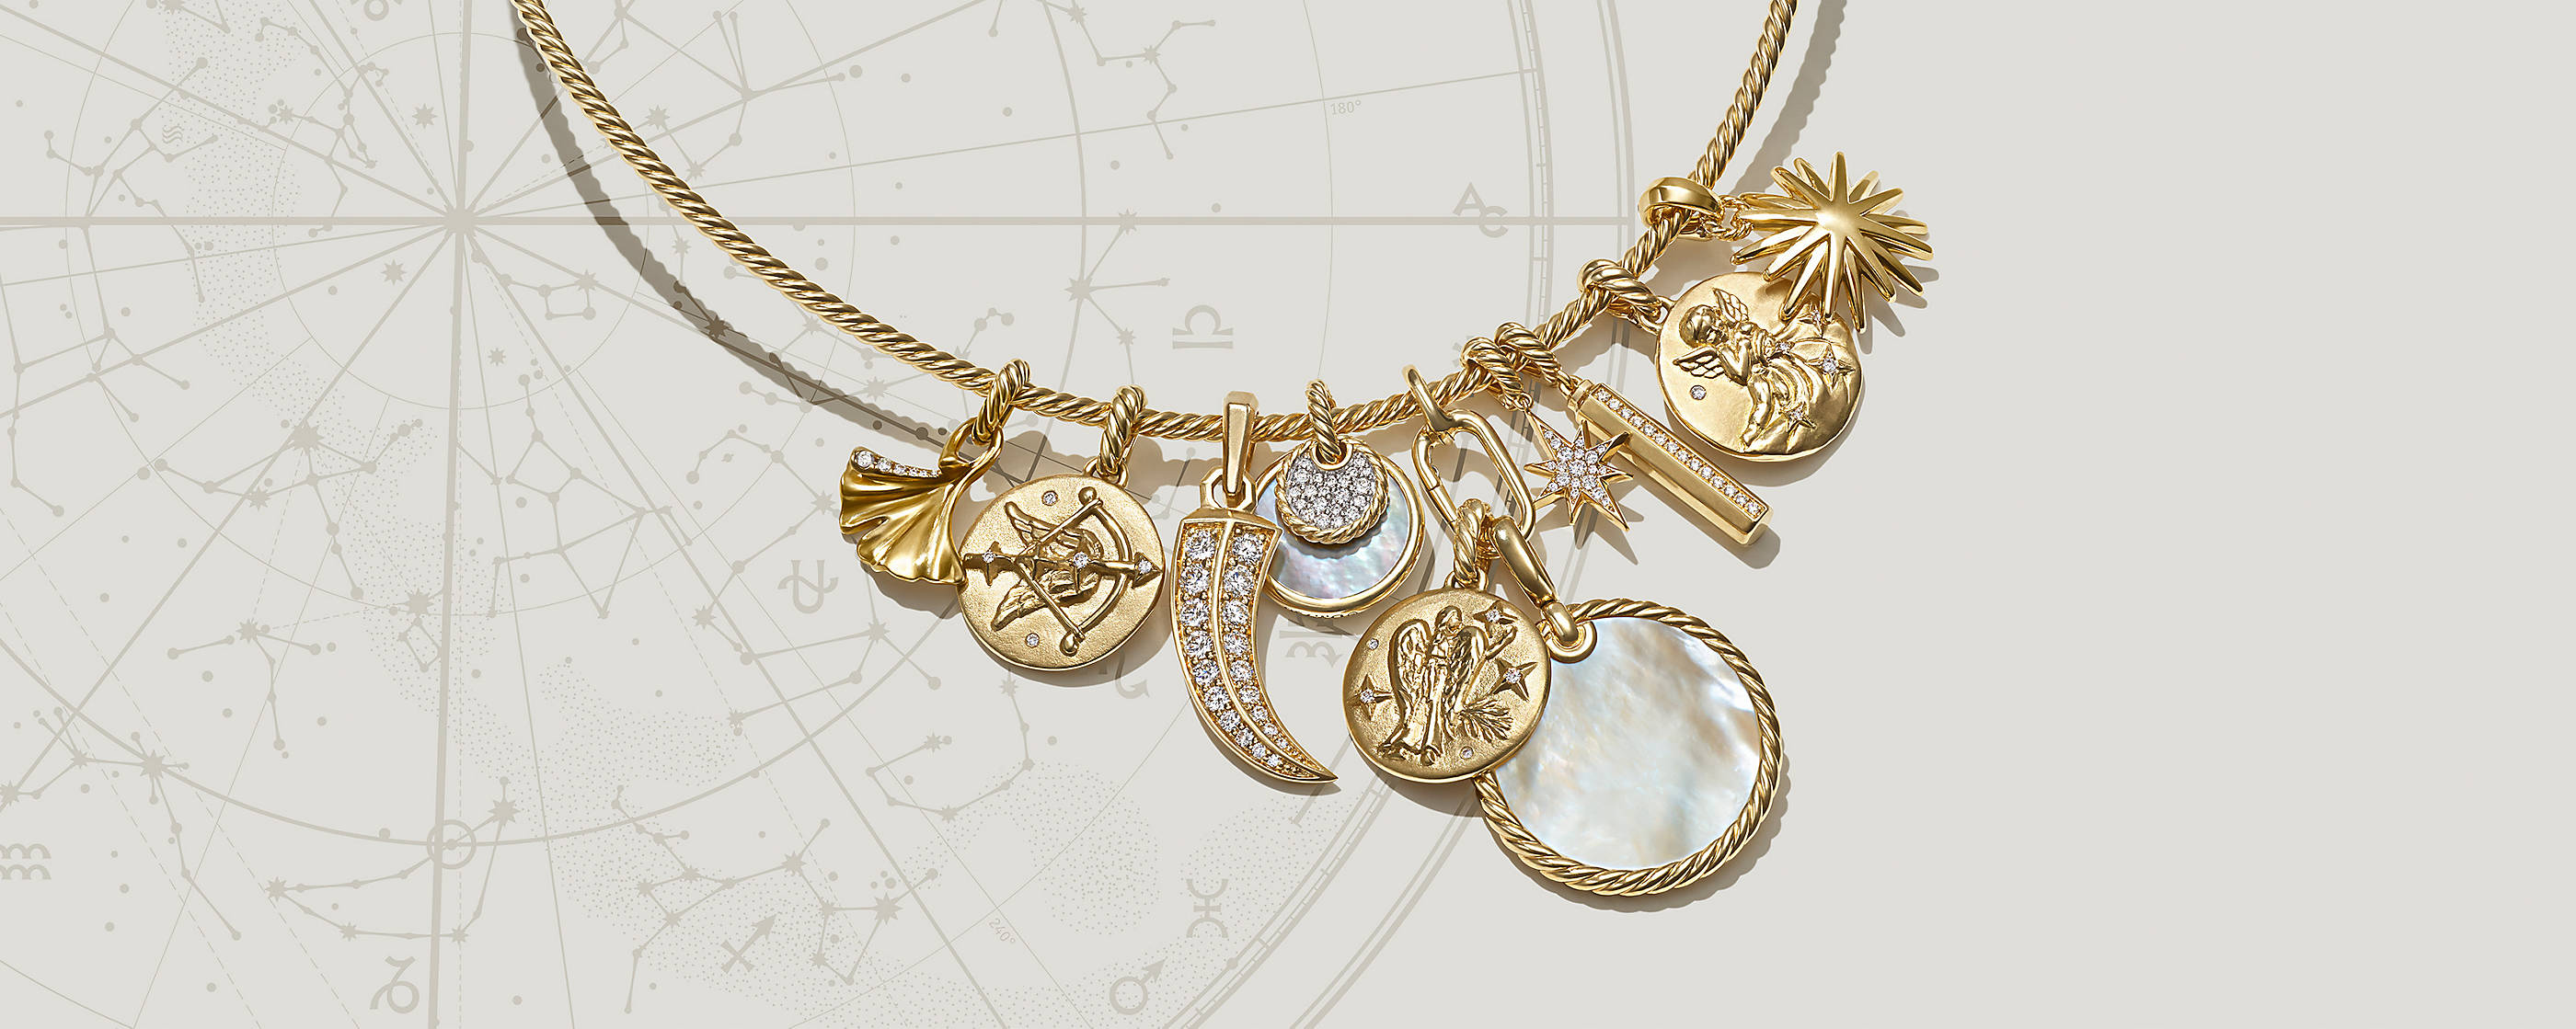 An image shows a Cable necklace threaded with ten charms. The jewelry is crafted from 18K yellow gold with or without pavé diamonds or mother-of-pearl. The amulets range from circles to a horn to three charms depicting different zodiac signs such as an archer and water bearer.